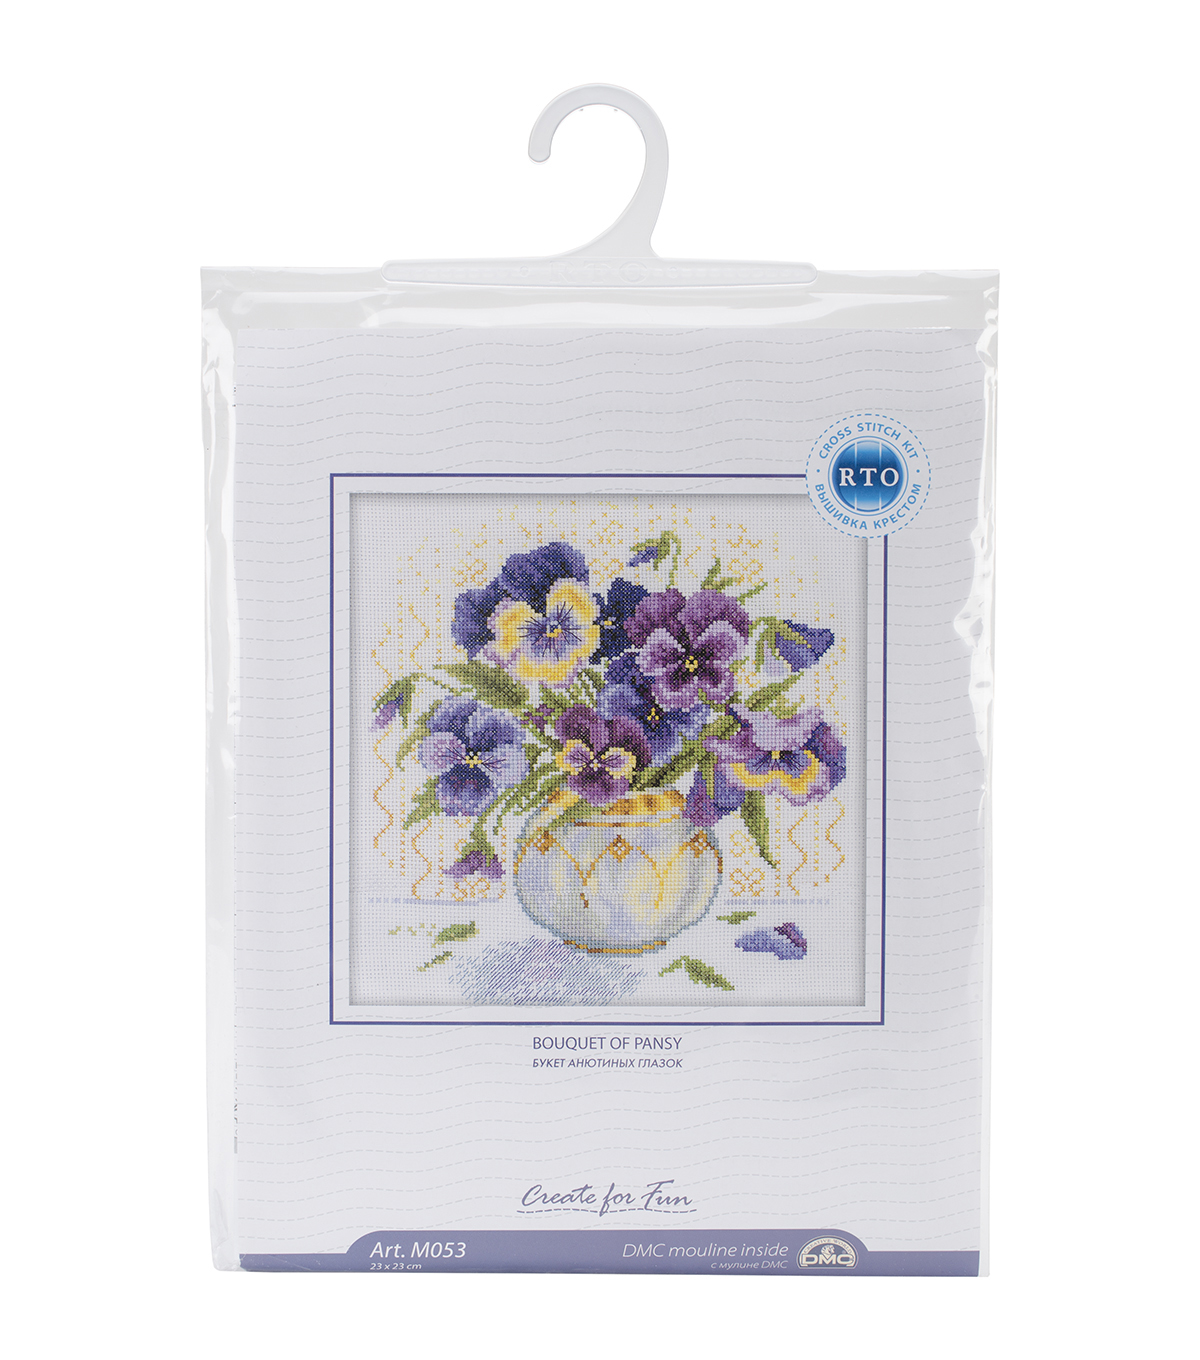 RTO- Pansies Counted Cross Stitch Kit